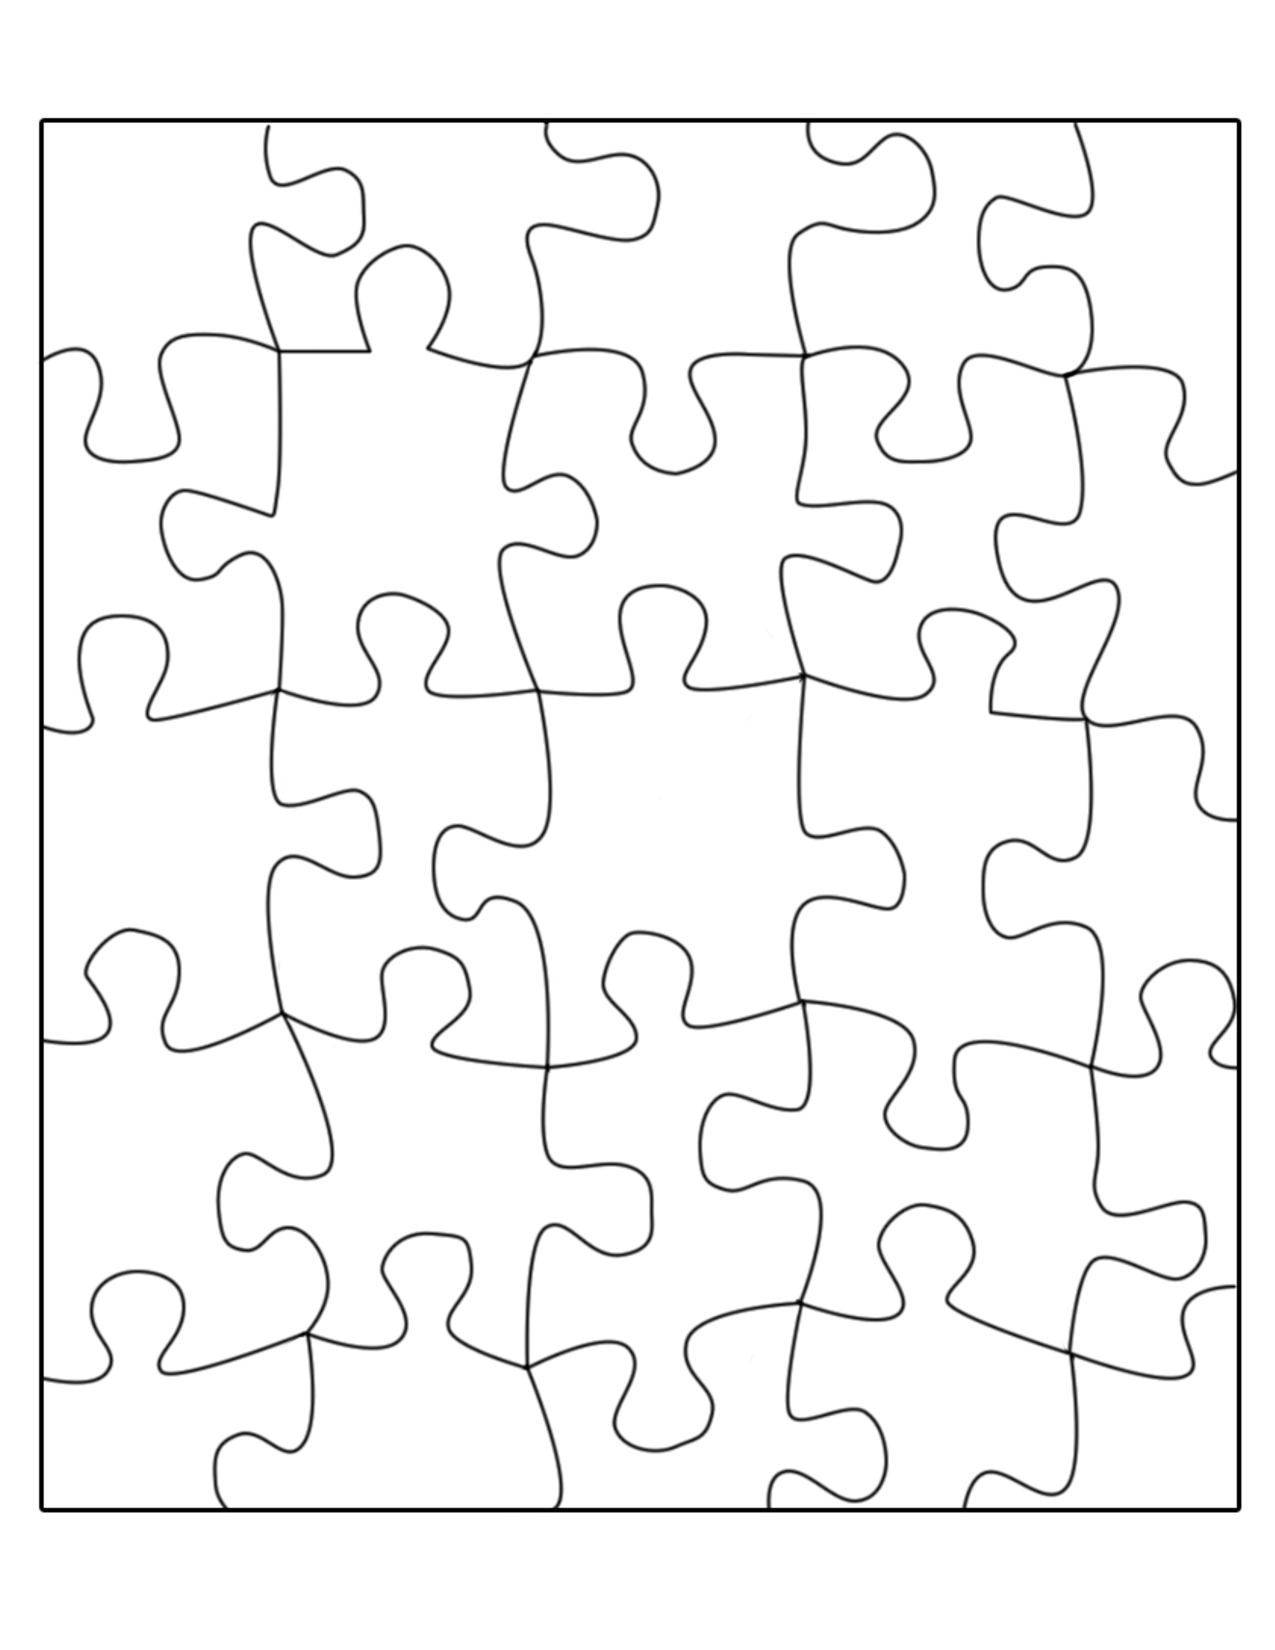 Free Jigsaw Puzzle Templates Printable And In Different